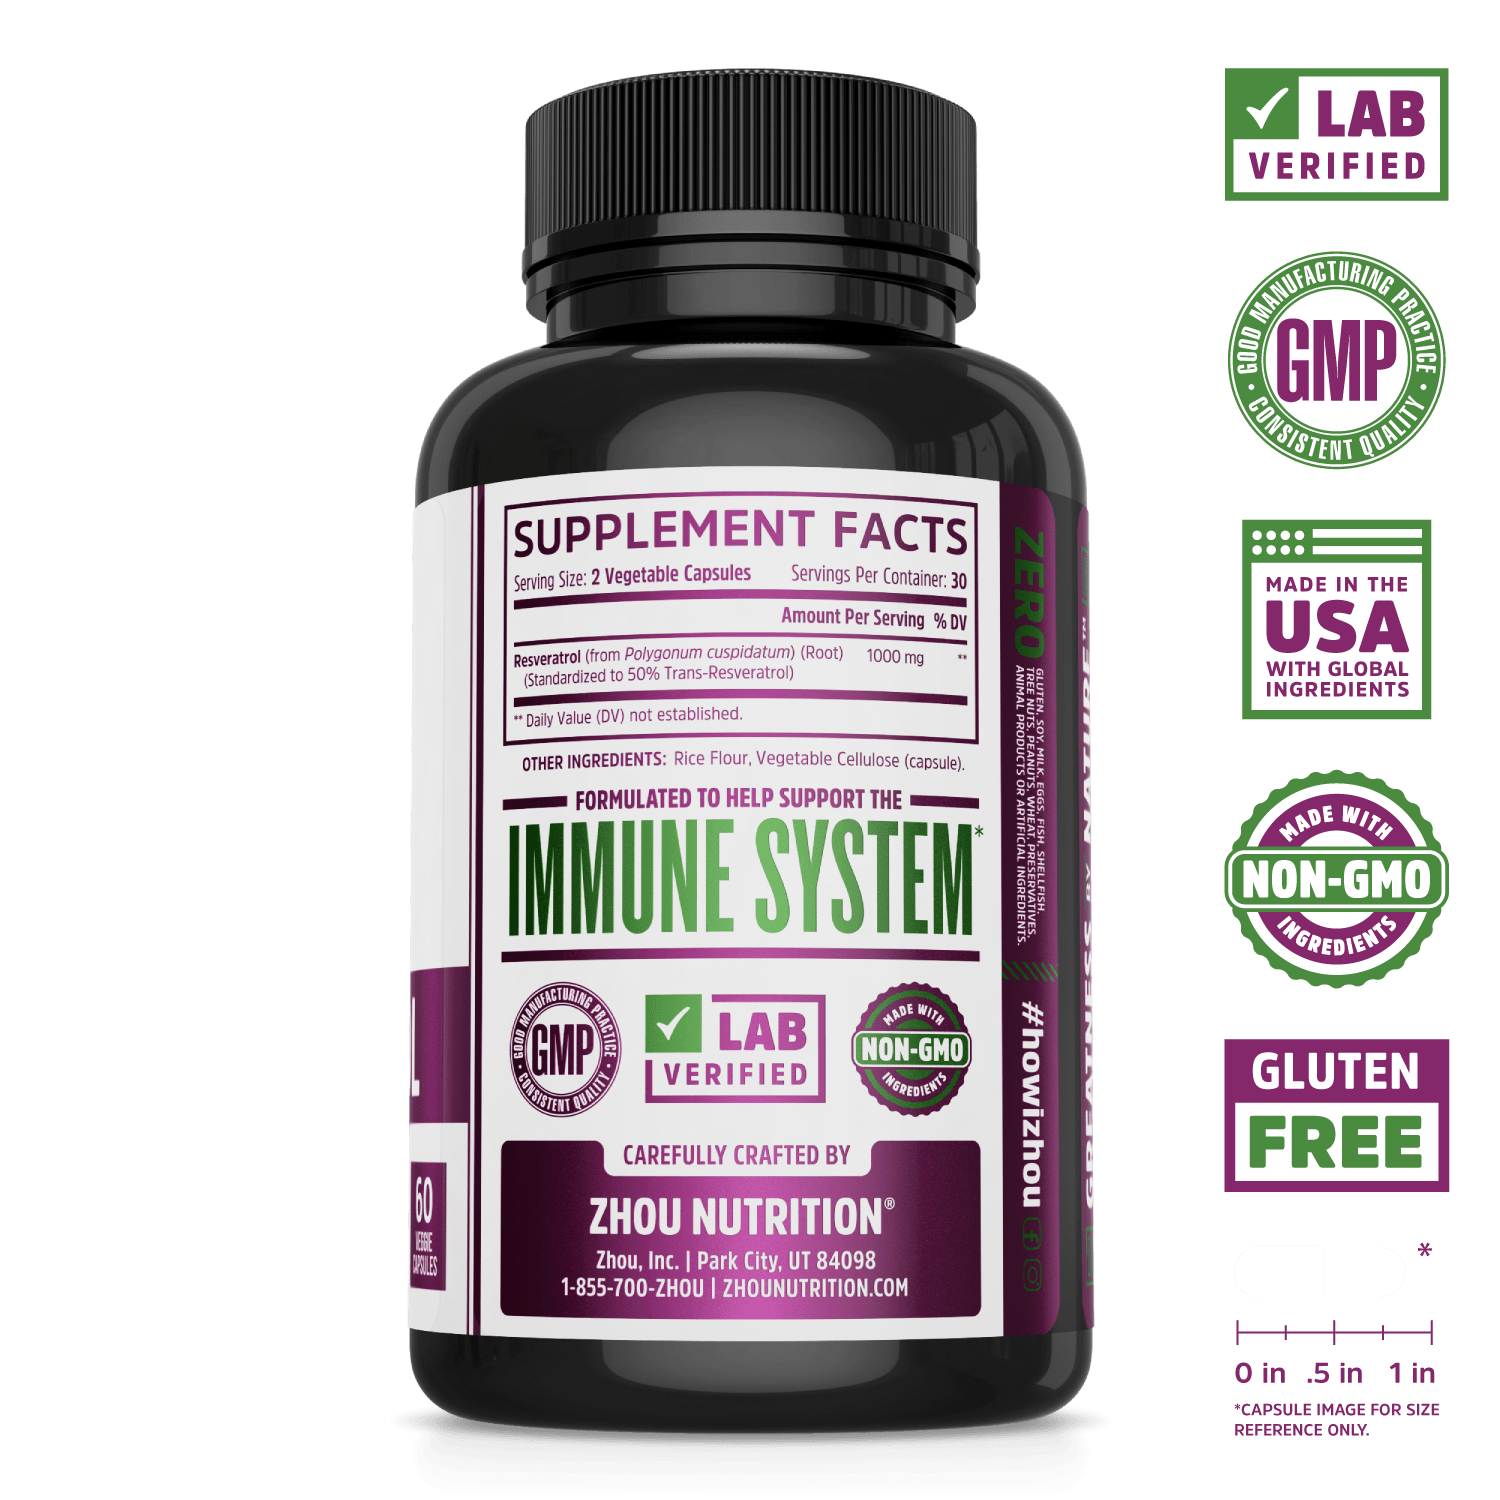 Zhou Nutrition High Potency Resveratrol Capsules. Lab verified, good manufacturing practices, made in the USA with global ingredients, made with non-GMO ingredients, gluten free